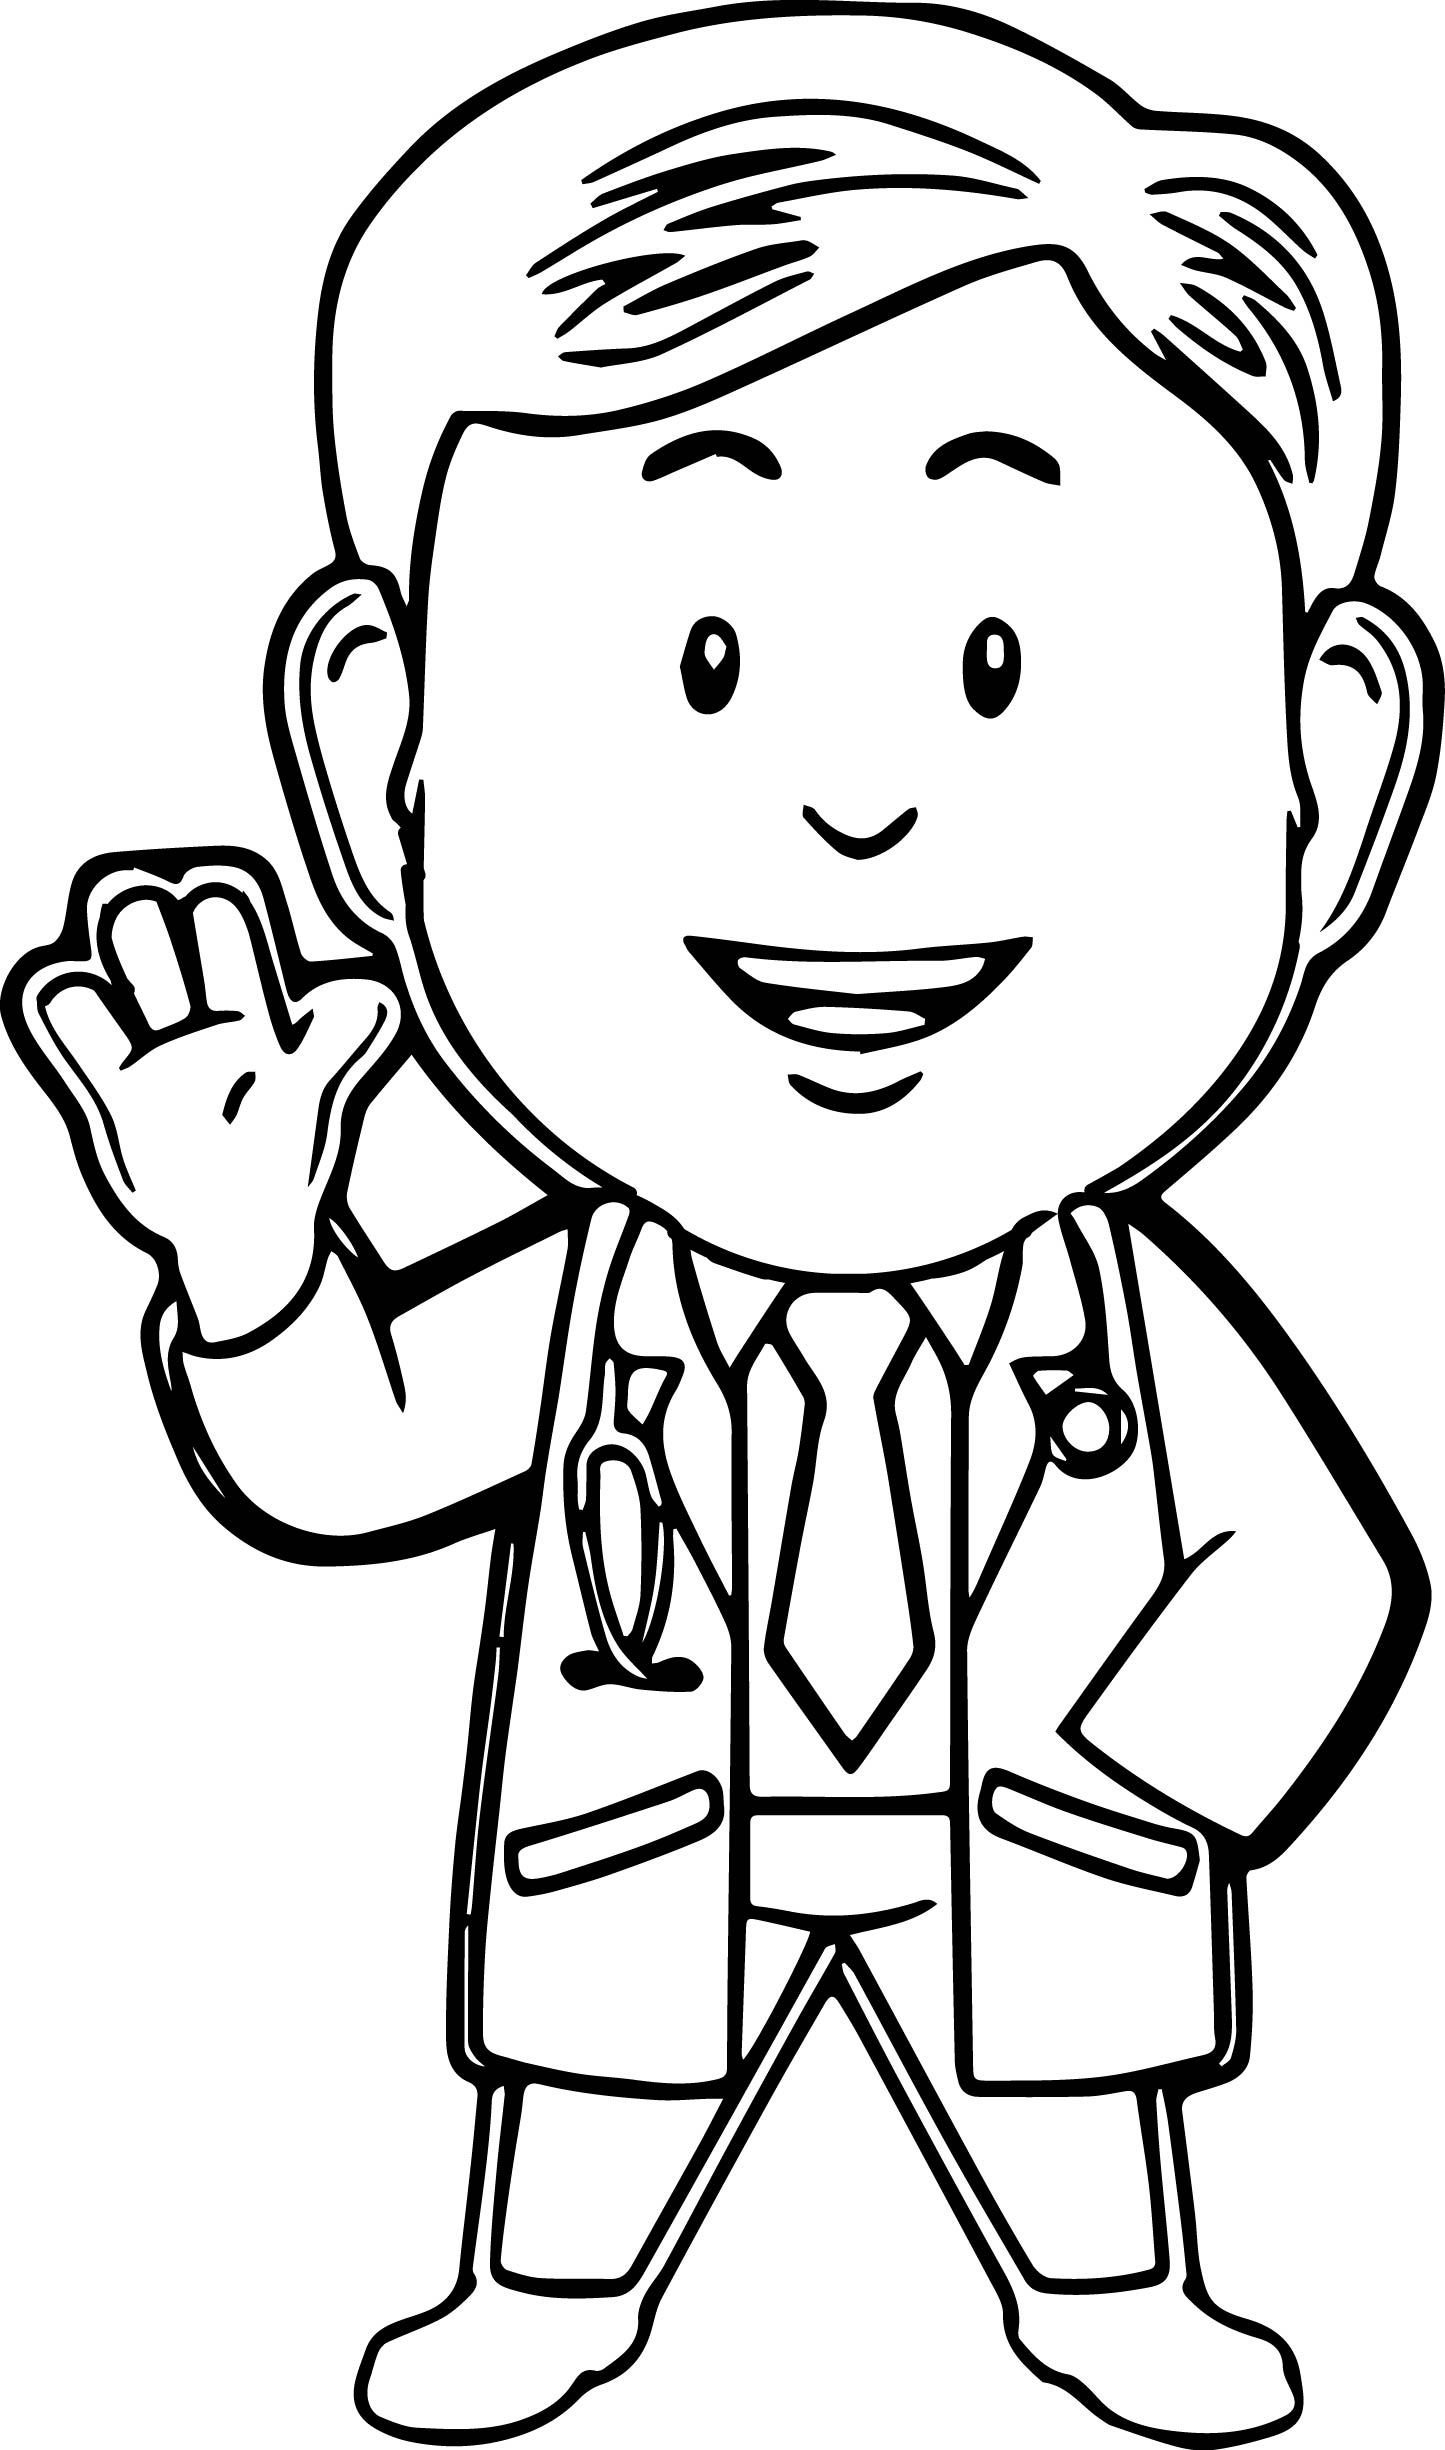 1445x2450 Doctor Coloring Pages With Doctor Coloring Pages Coloring Pages